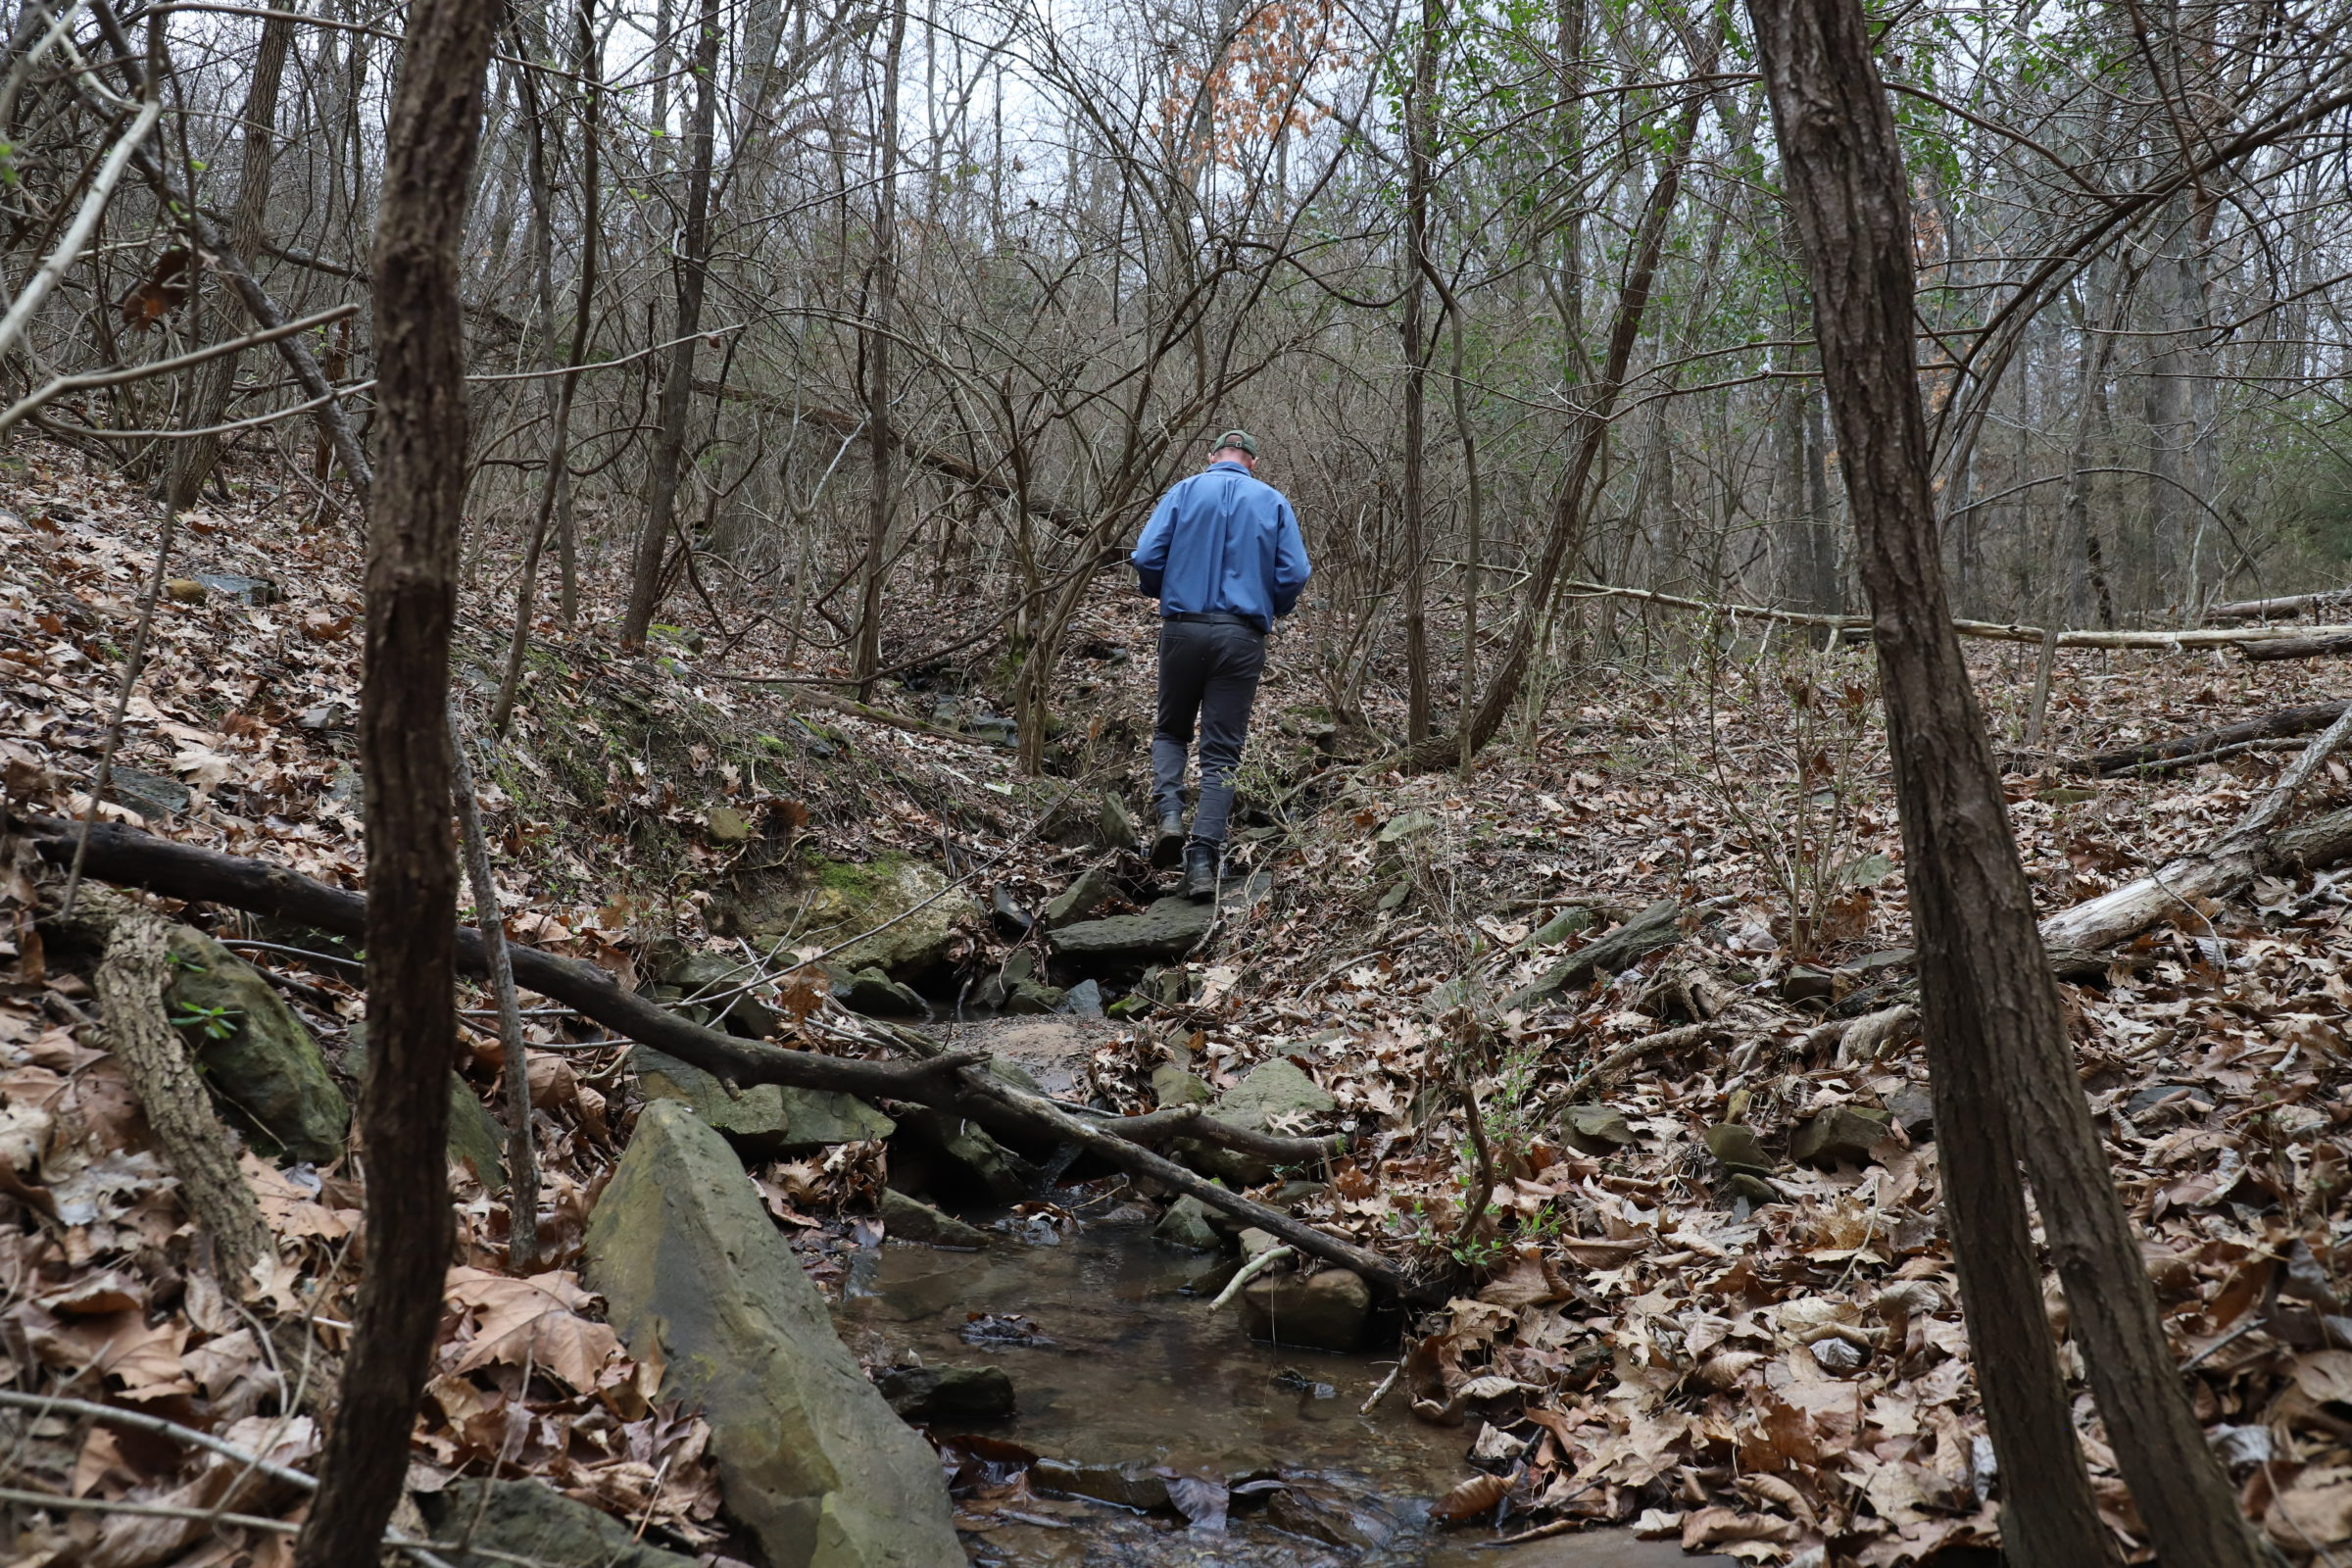 A man walks away from the camera along a creek. It is winter and leaves cover the ground.